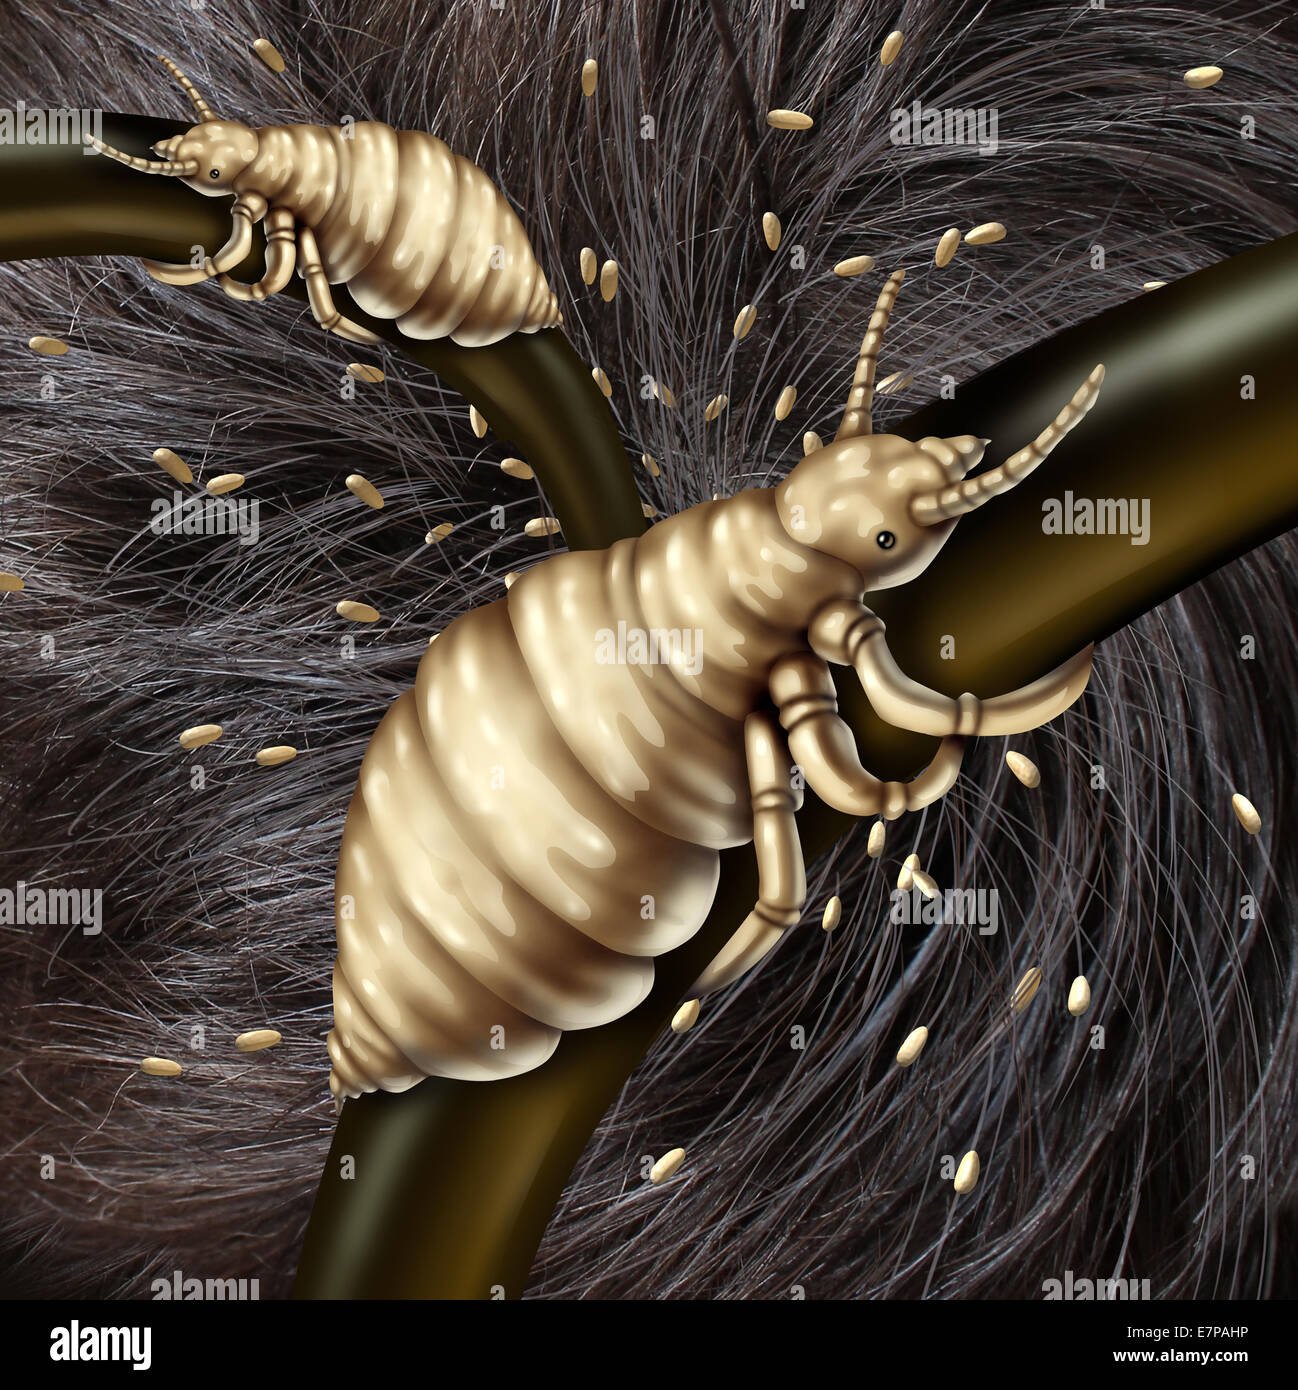 Lice in hair problem as a medical concept with a macro close up of a human head with an infestation of parasitic - Stock Image